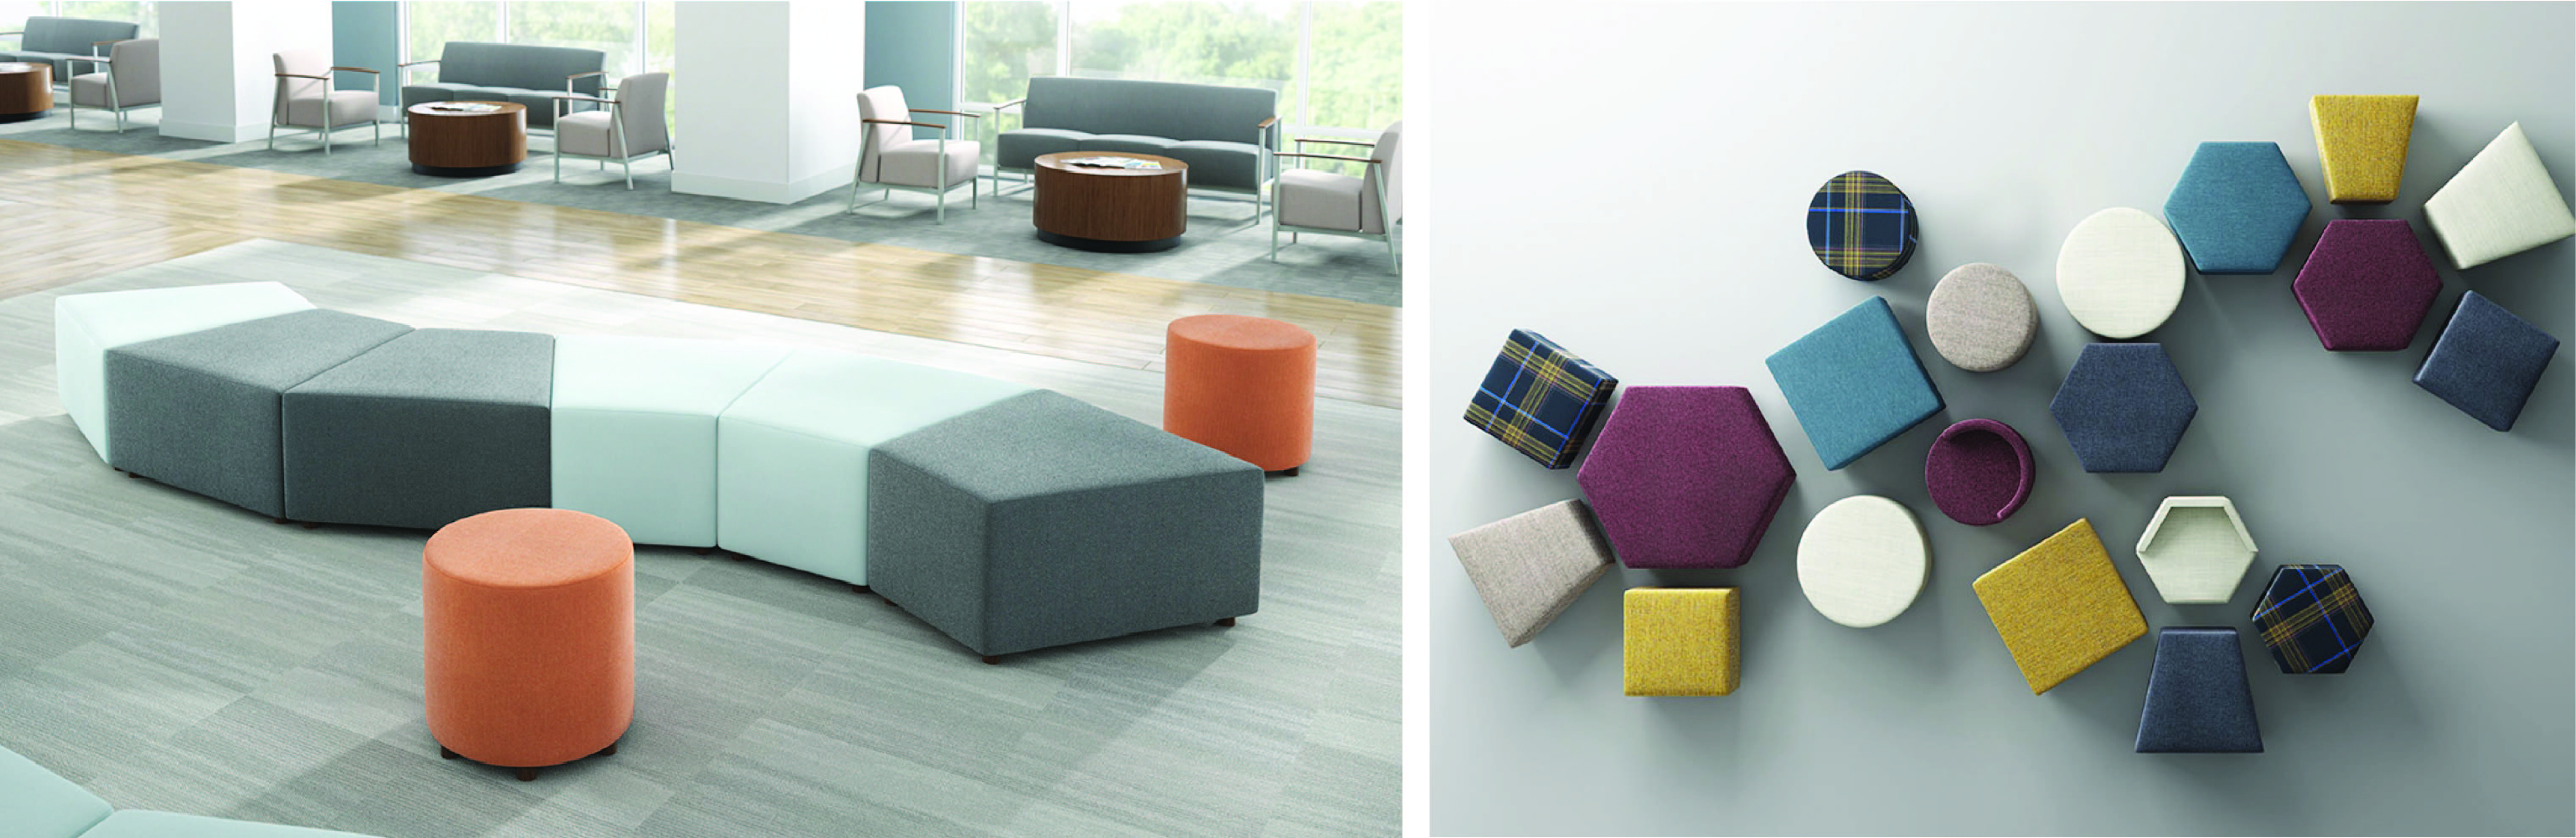 Ancillary Furniture - Boost+ Ottomans by Carolina